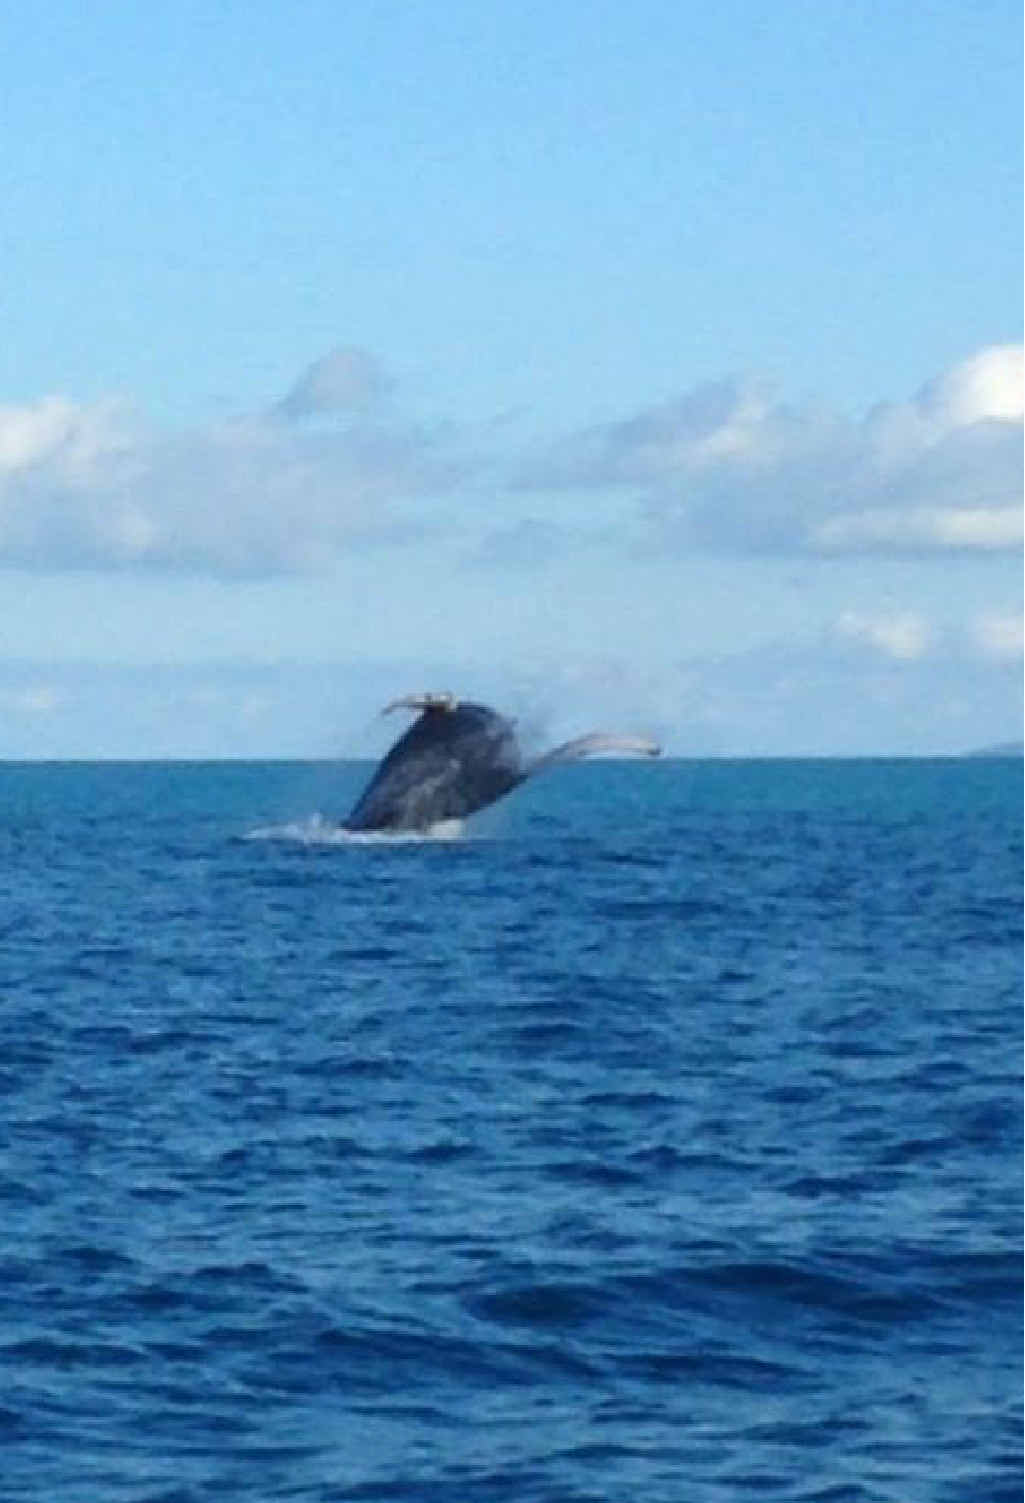 SPOTTED: Jeremy Rocko Kenningale sent in this photo of a whale near Seaforth. This is just one of the whales spotted in recent times.